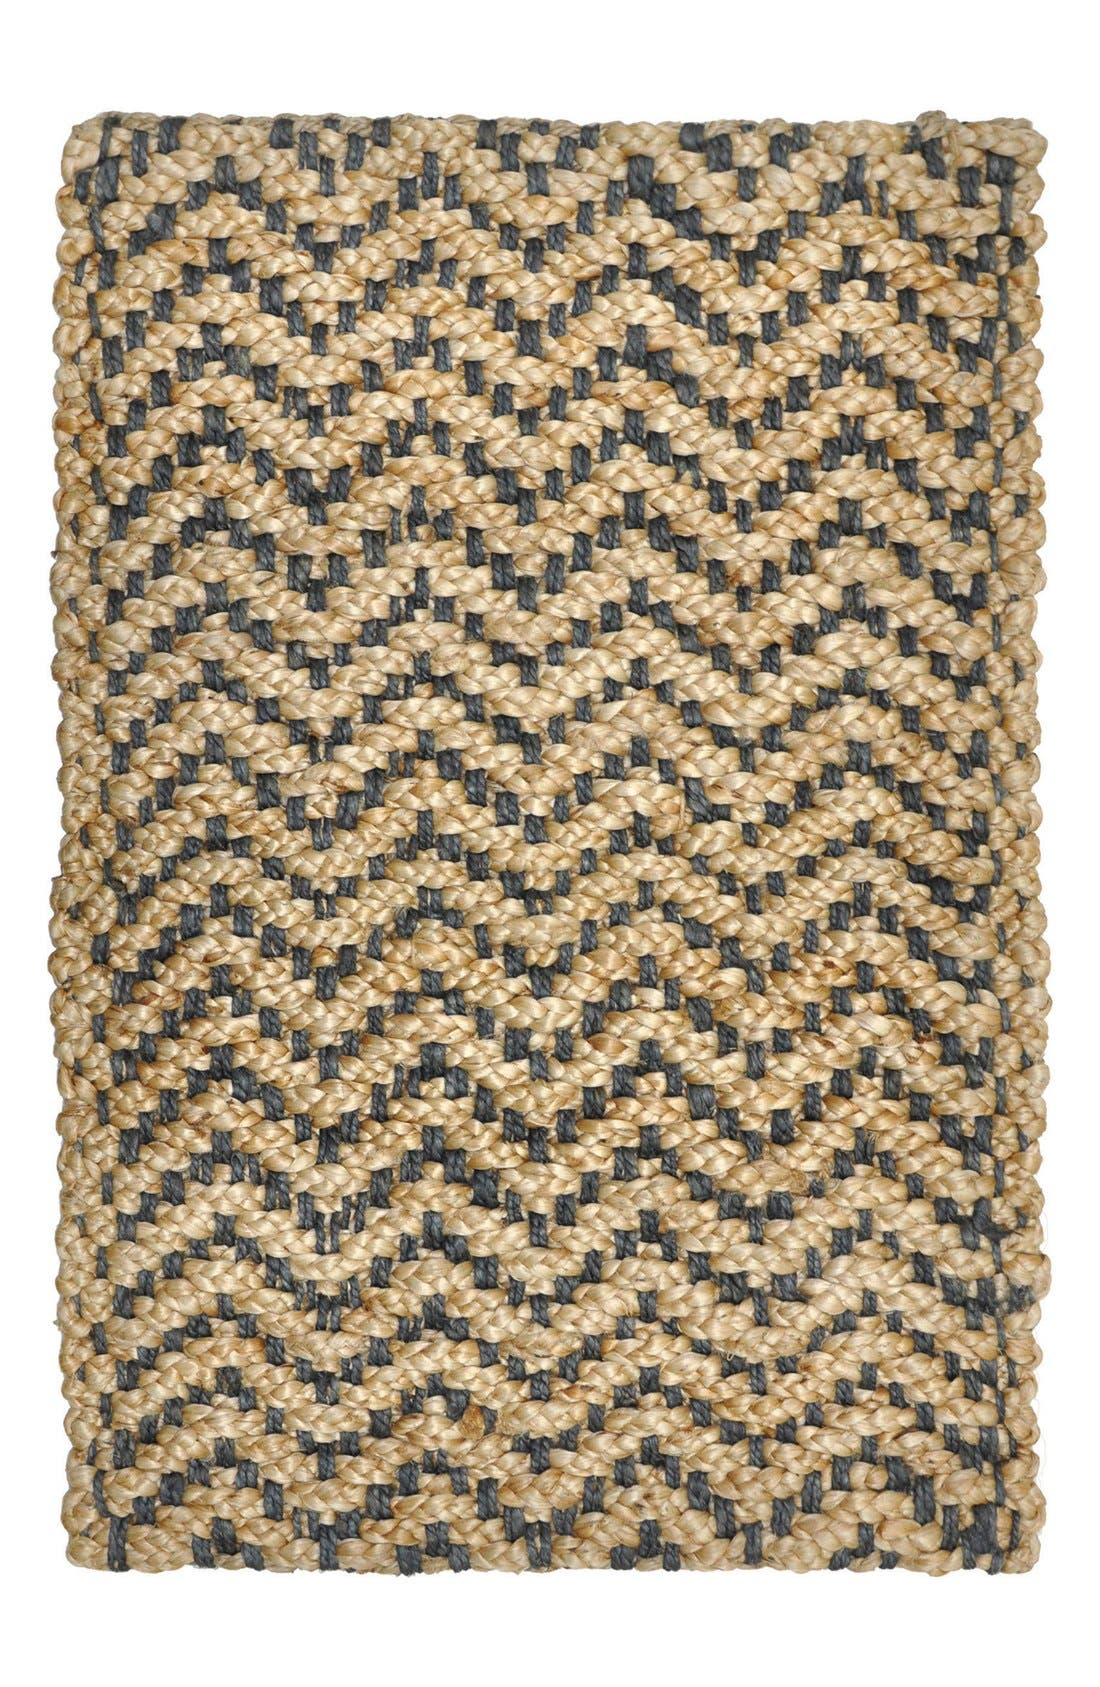 Herringbone Handwoven Rug,                             Main thumbnail 1, color,                             020